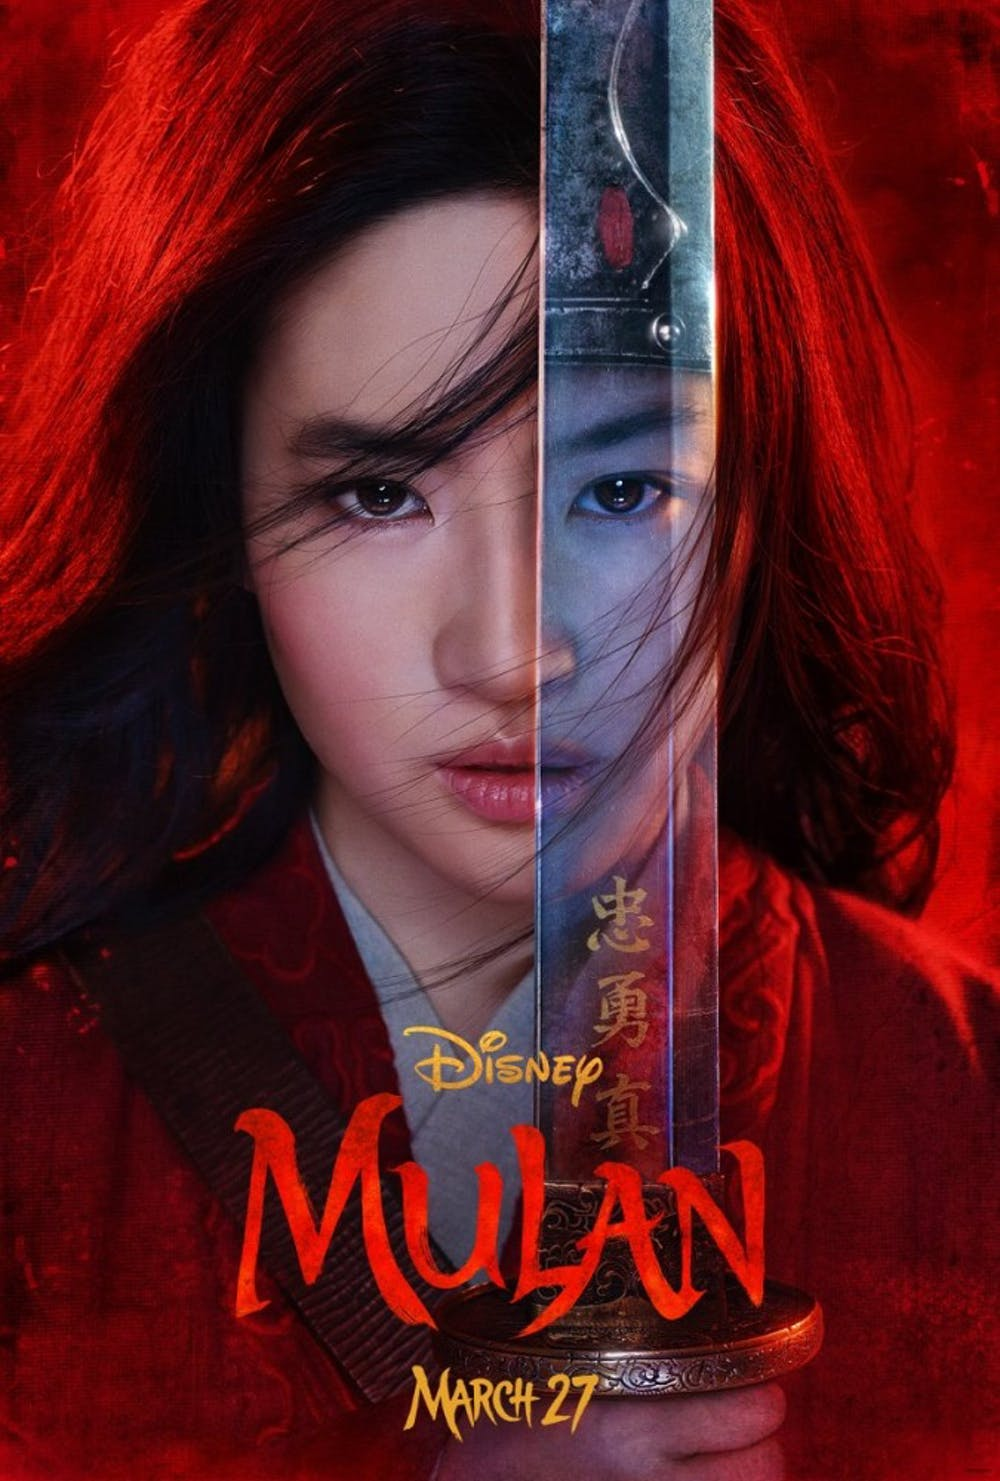 Twitter Reactions: Disney's live-action 'Mulan' brings an empowered female lead to the forefront in its first trailer